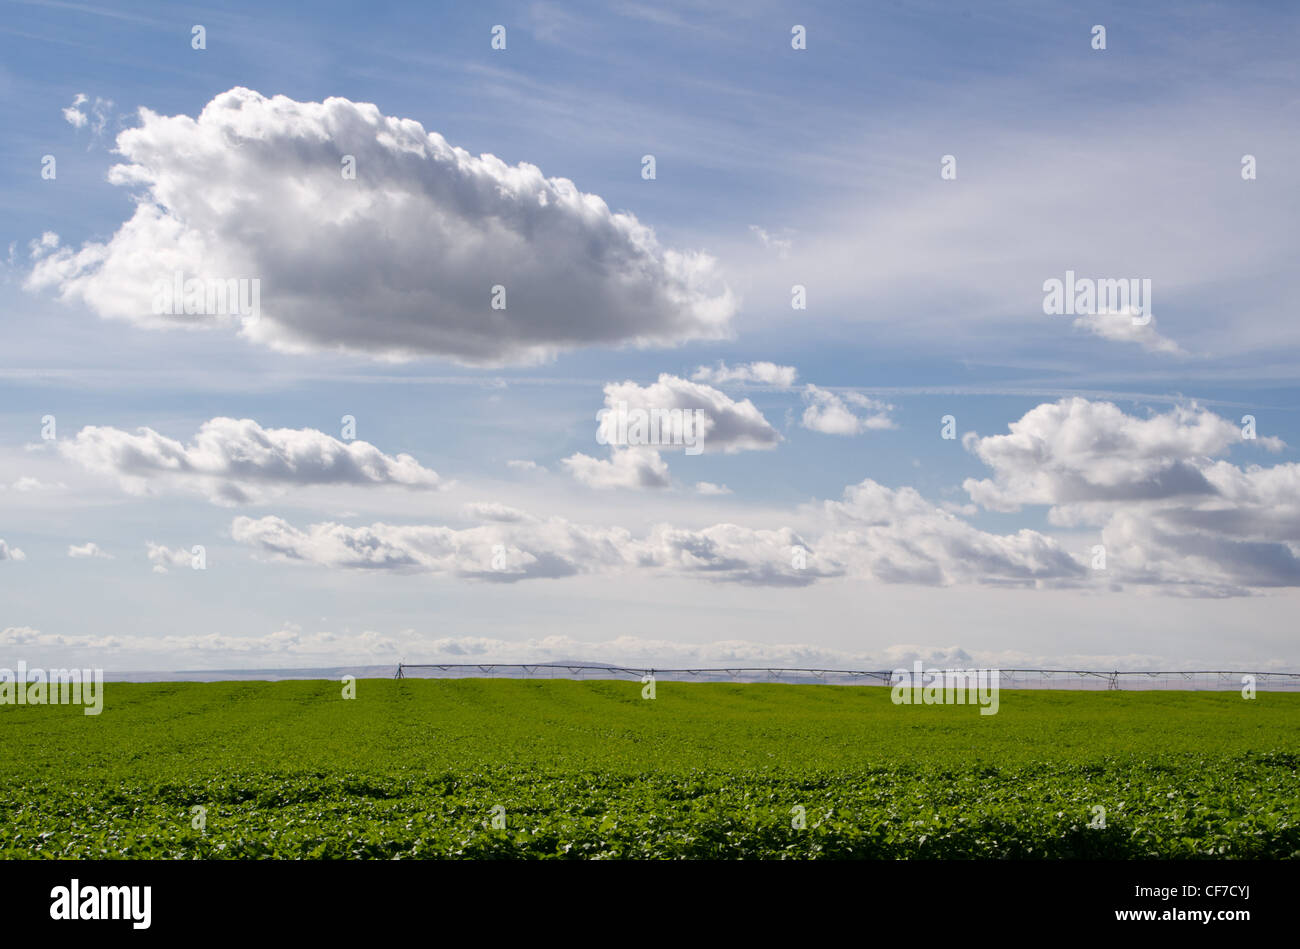 A field of potatoes is being irrigated under a sky with white clouds - Stock Image